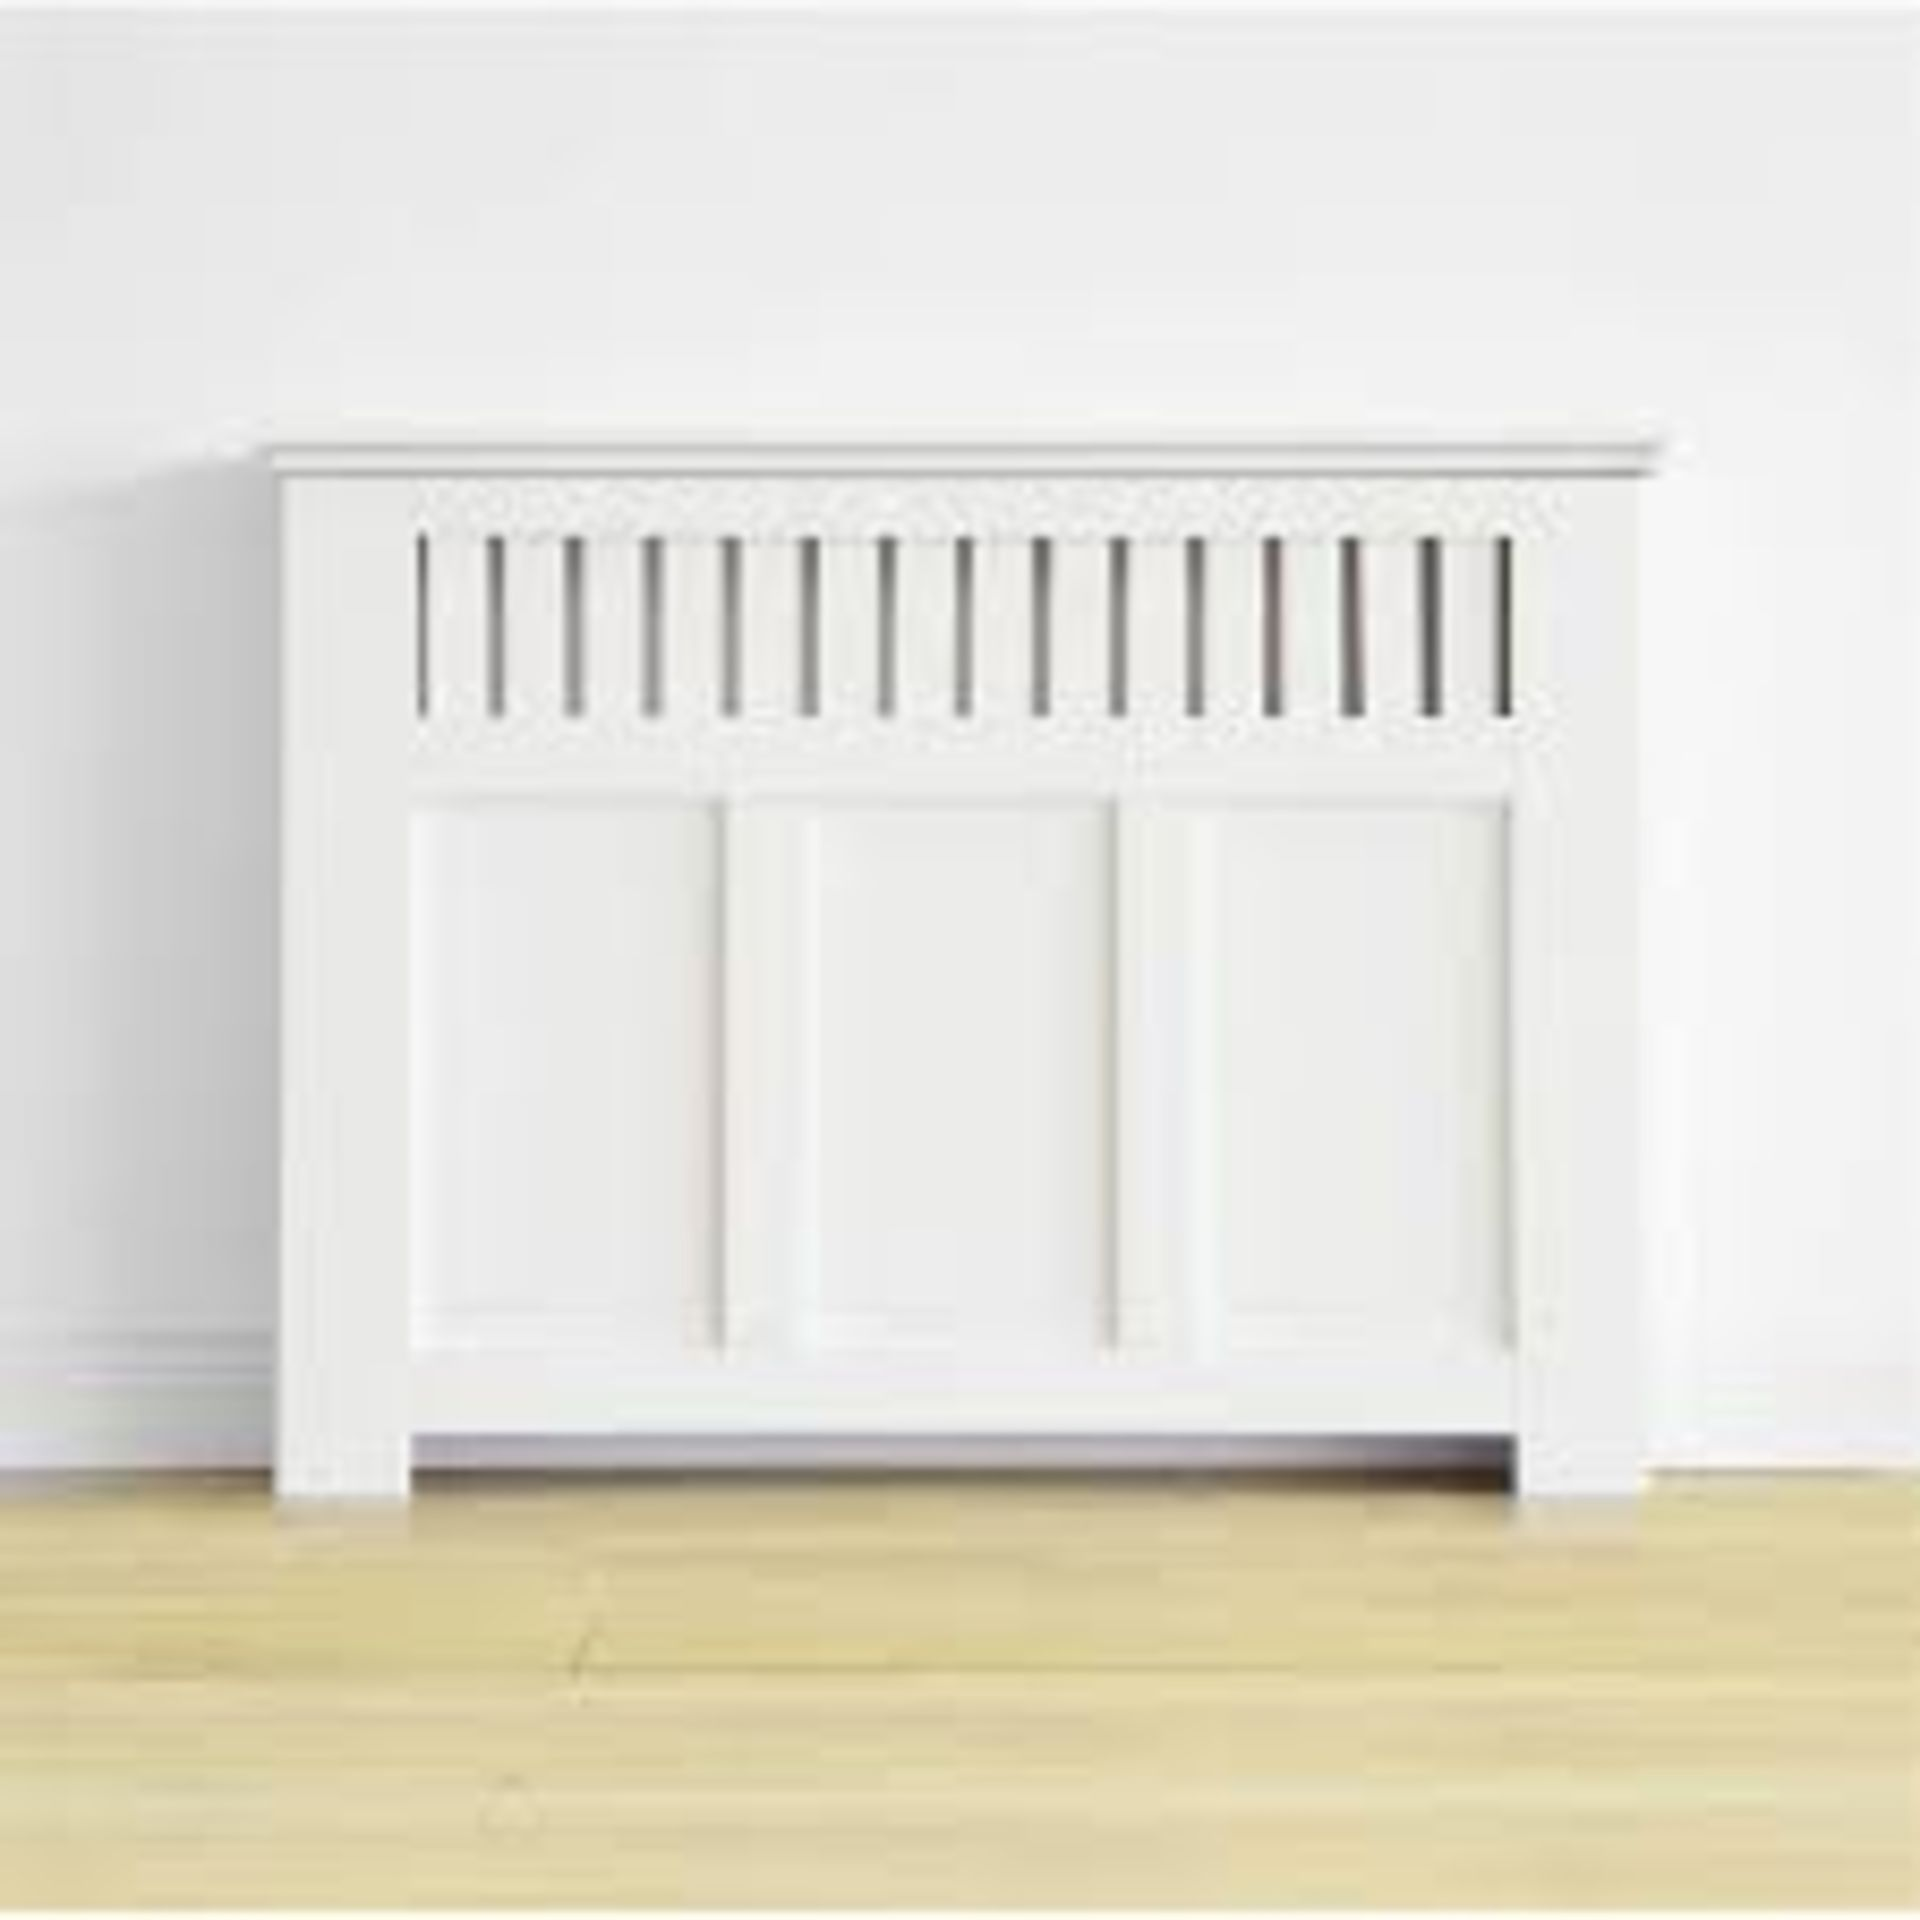 (3F) 1x Winther Browne Wilton Radiator Cabinet Smooth White Finish.